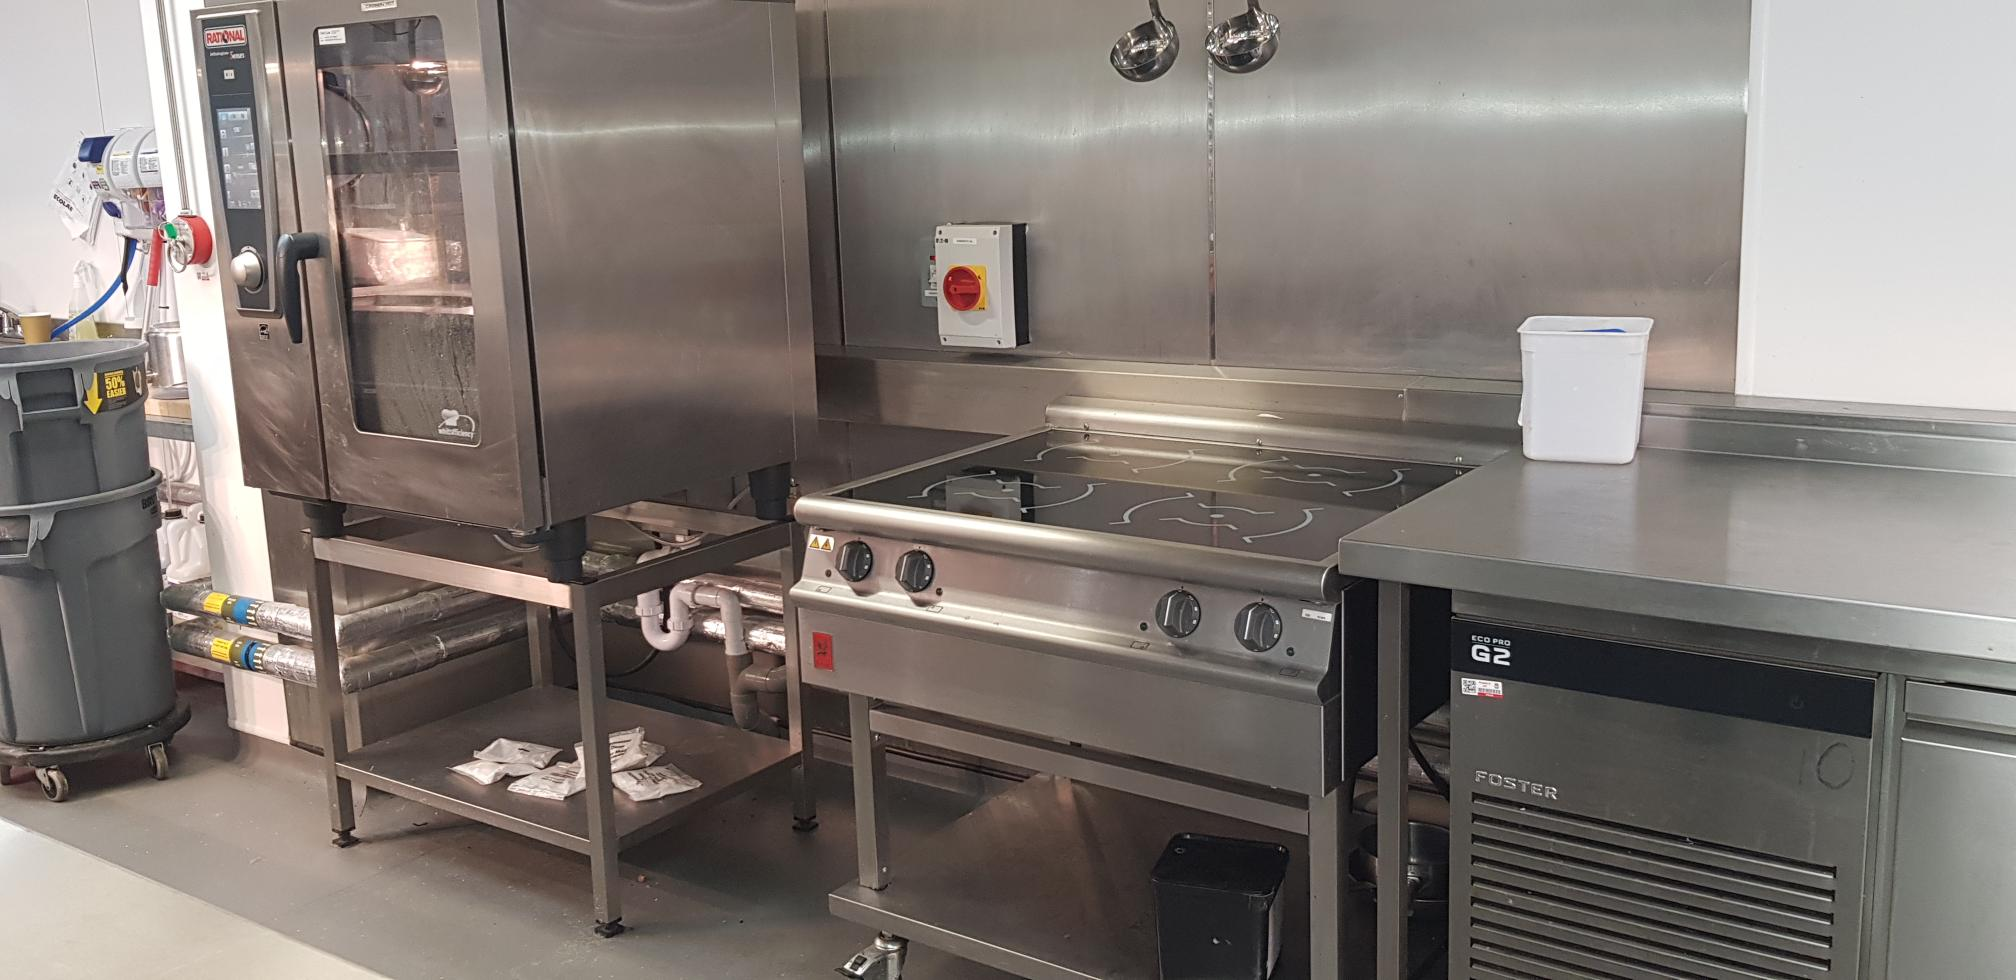 Service 2 - Anfield Liverpool FC catering 11